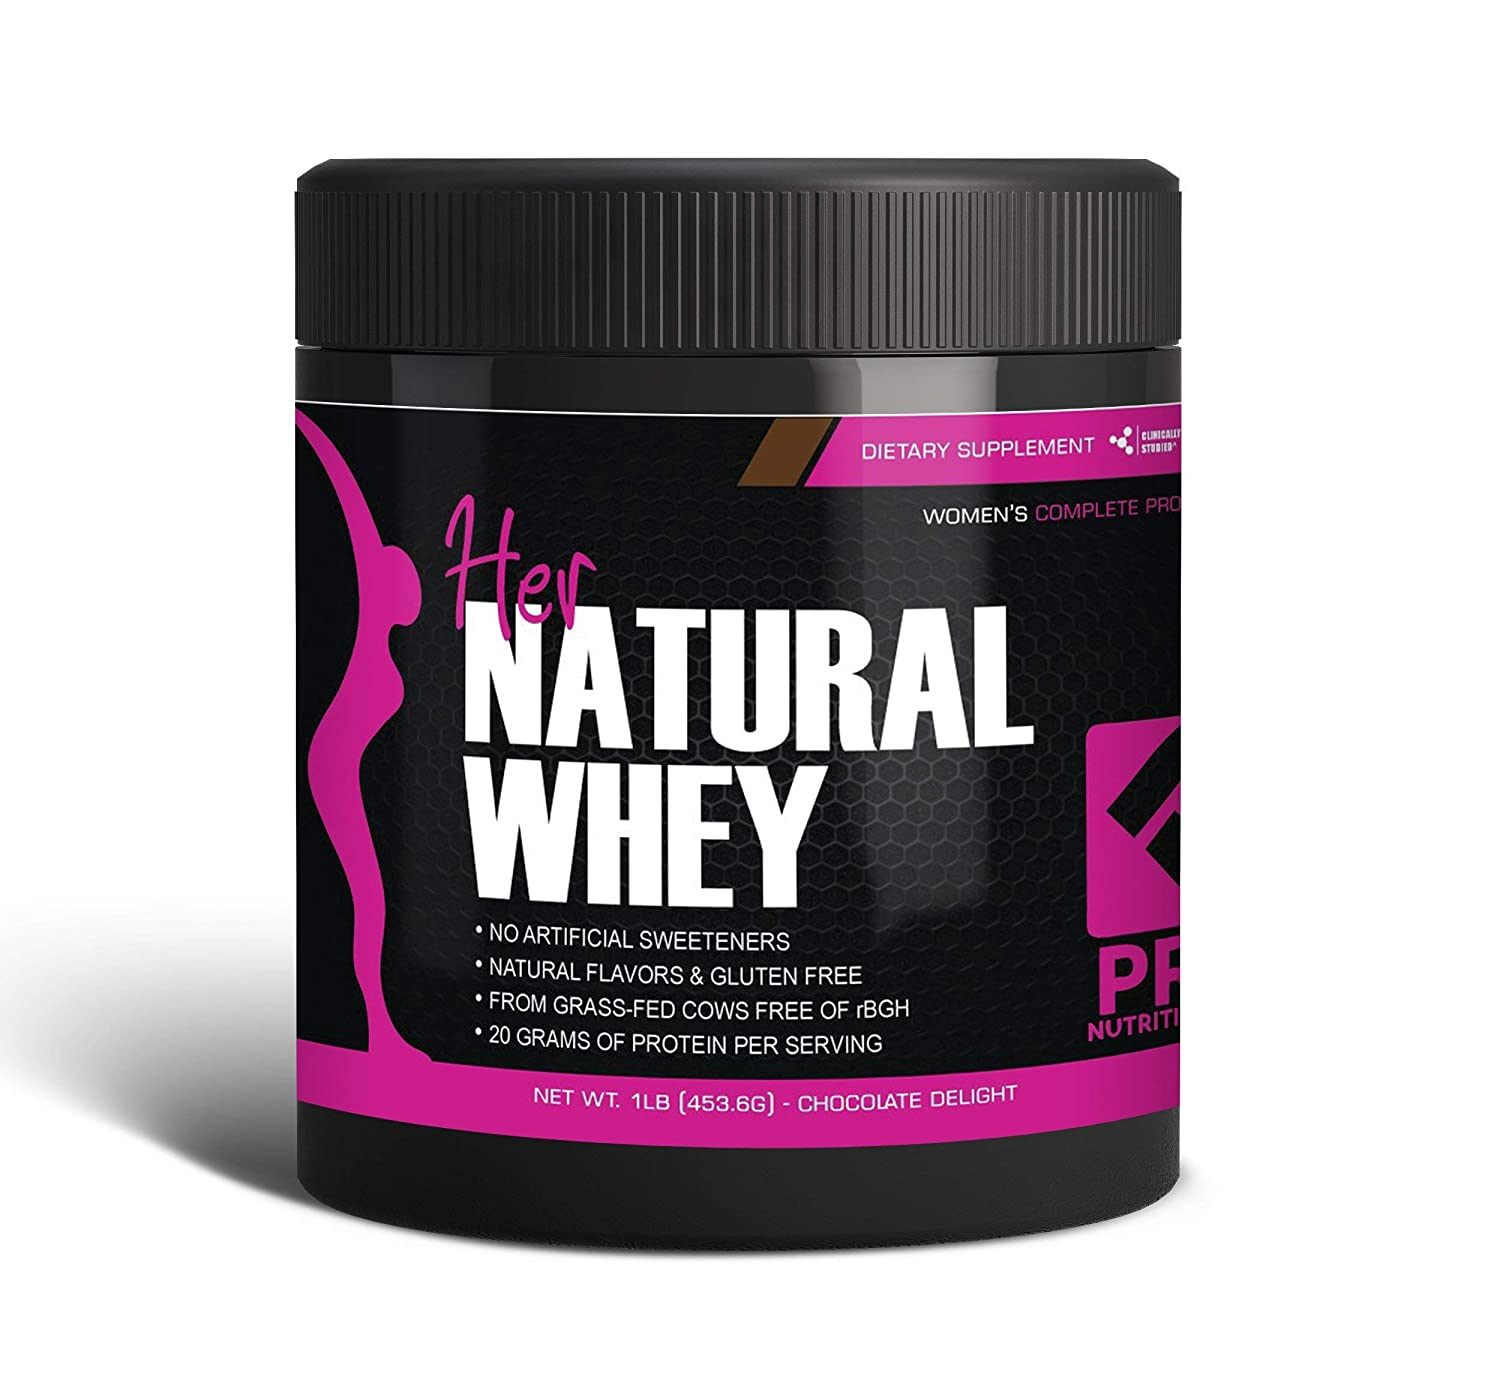 Whey Protein Powder for Weight Loss